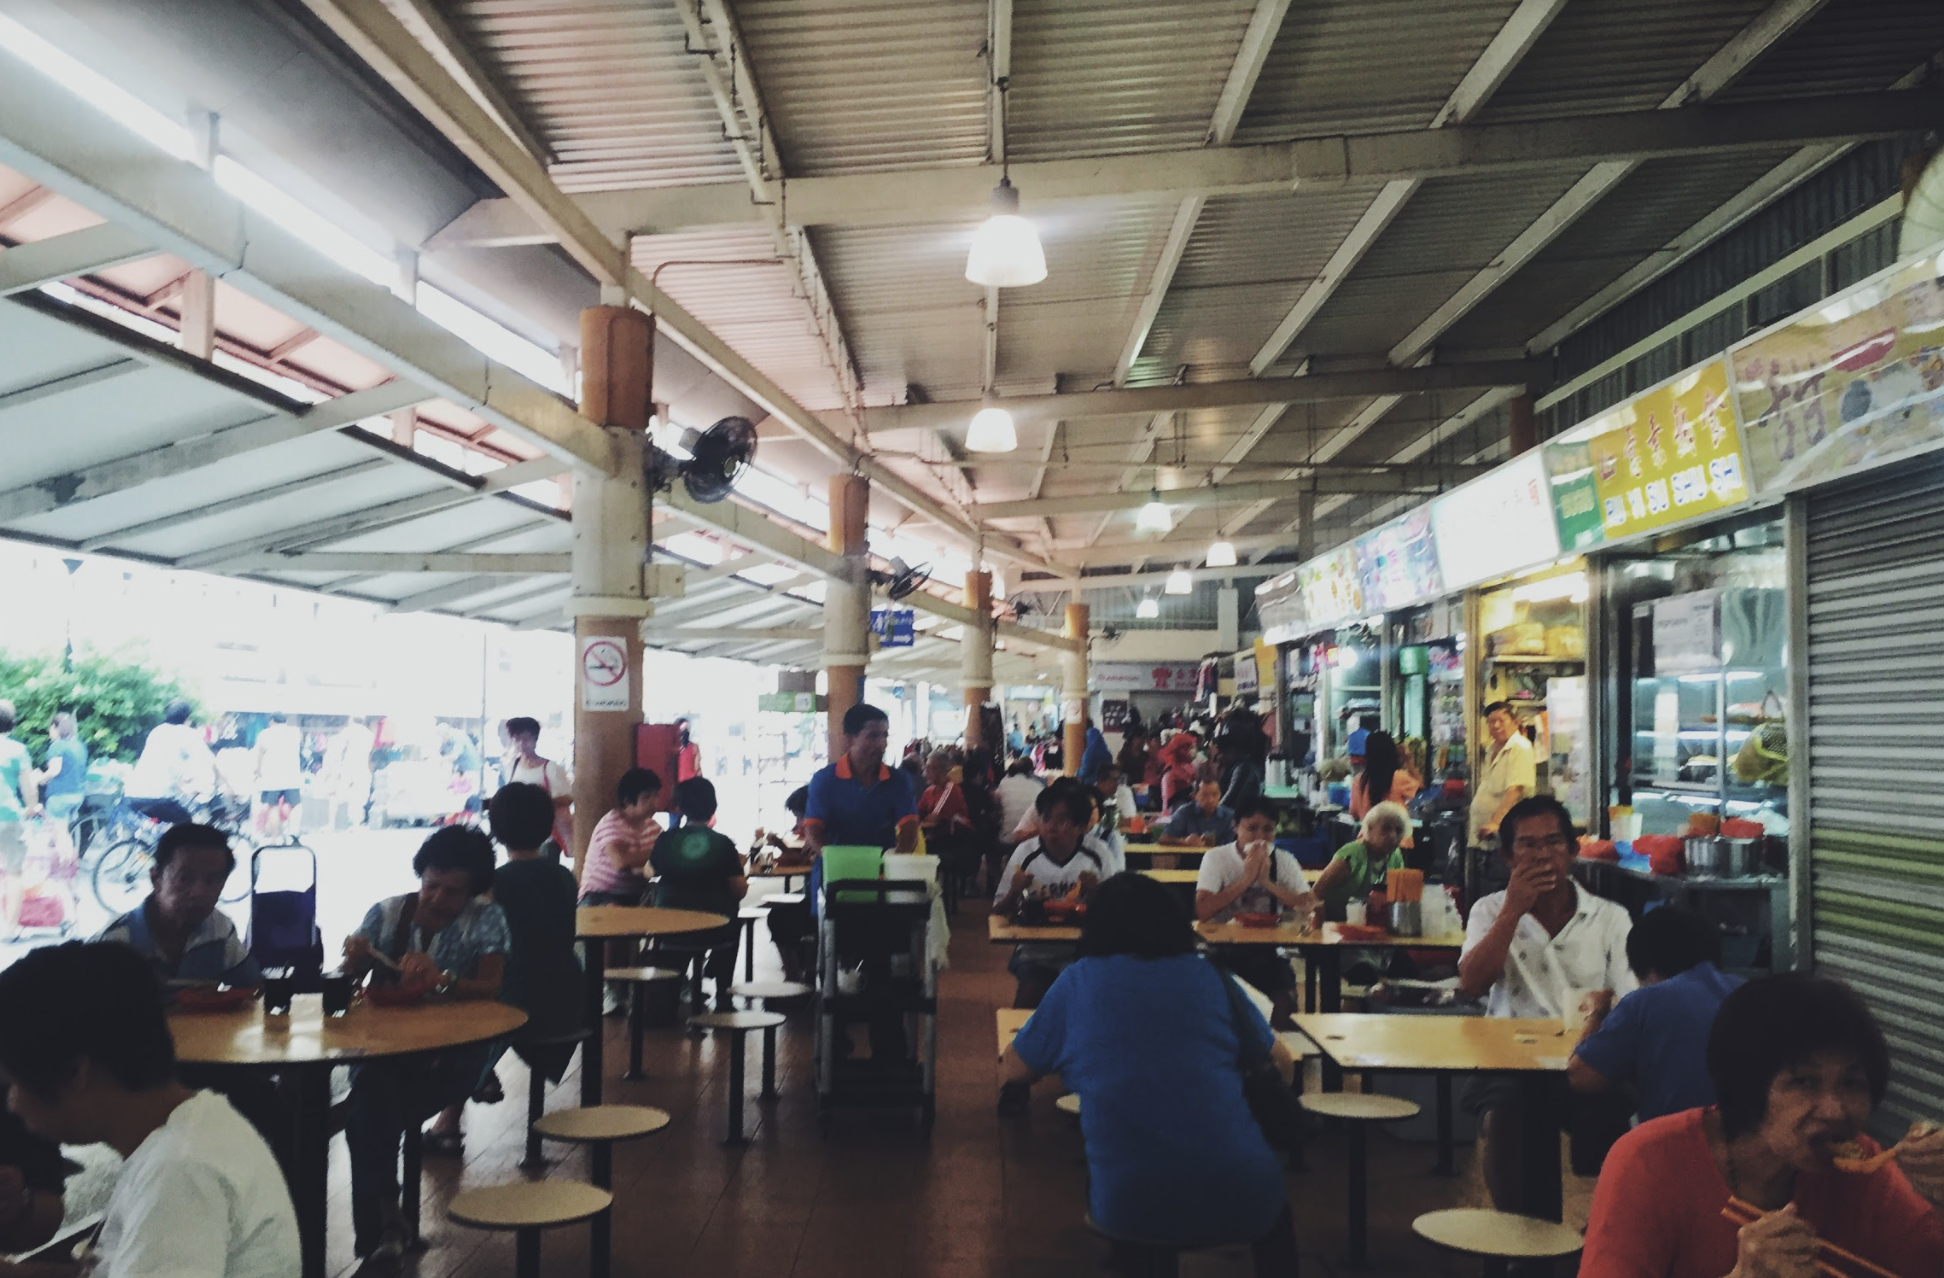 Hawker centres are integral to the social fabric of Singapore. Photo: Connected to India